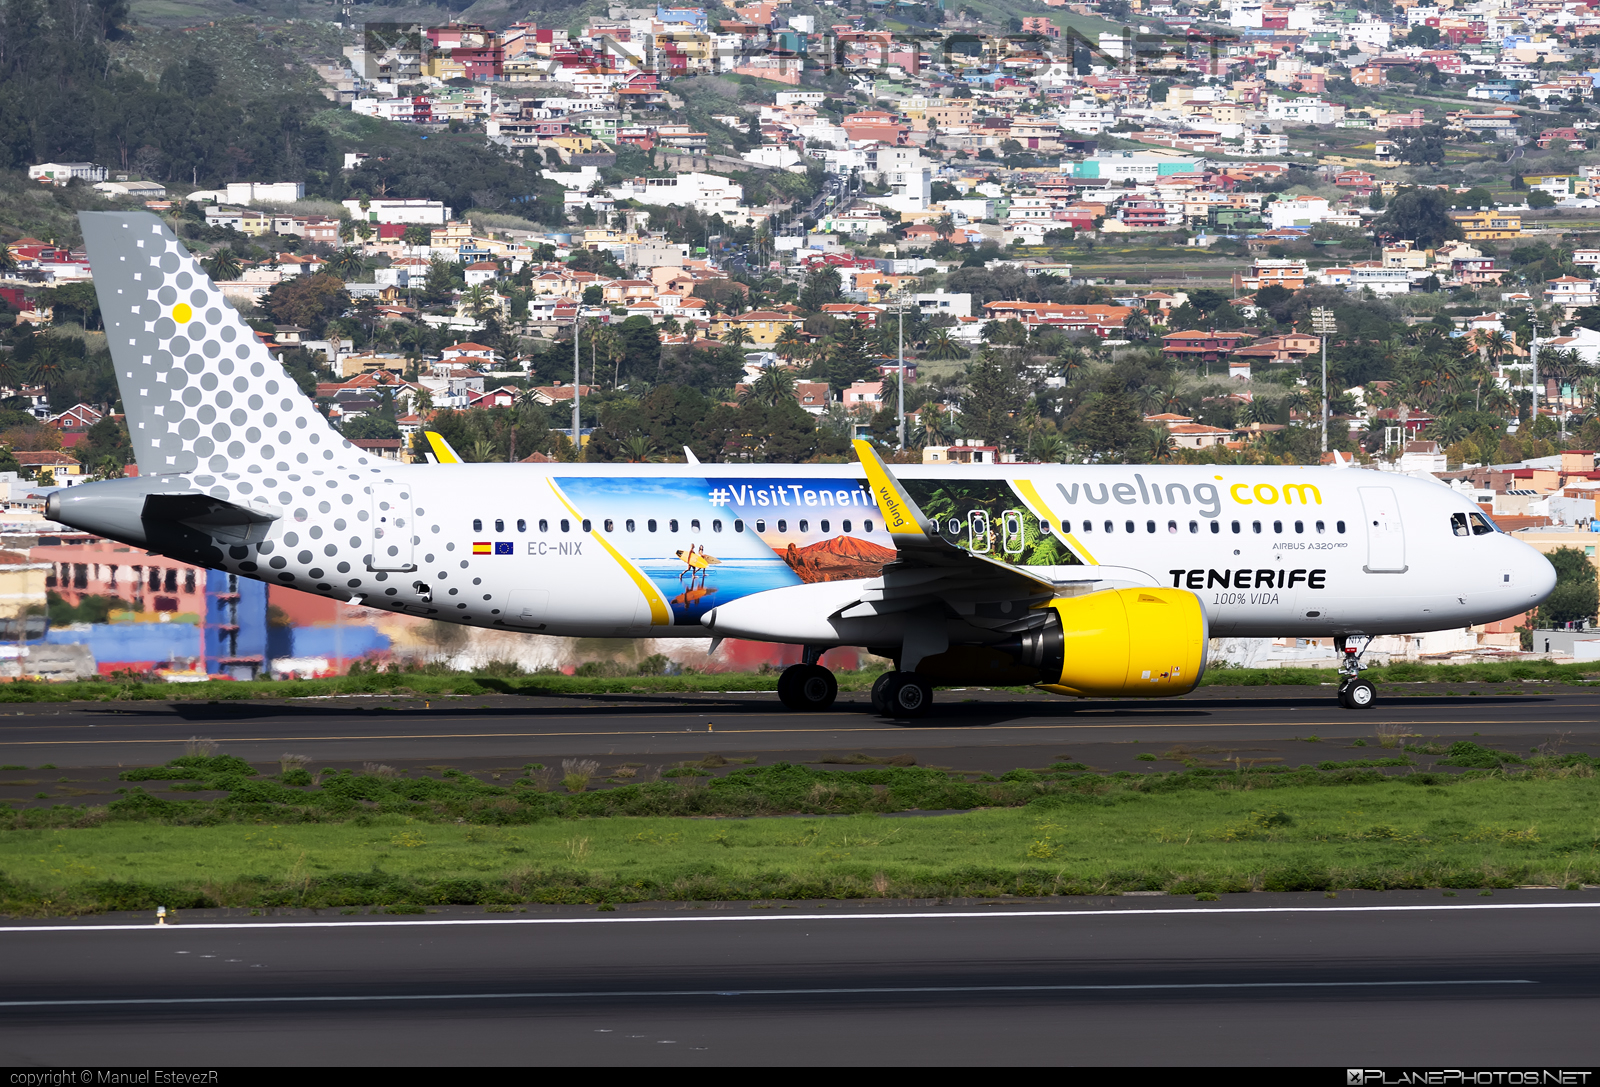 Airbus A320-271N - EC-NIX operated by Vueling Airlines #a320 #a320family #a320neo #airbus #airbus320 #vueling #vuelingairlines